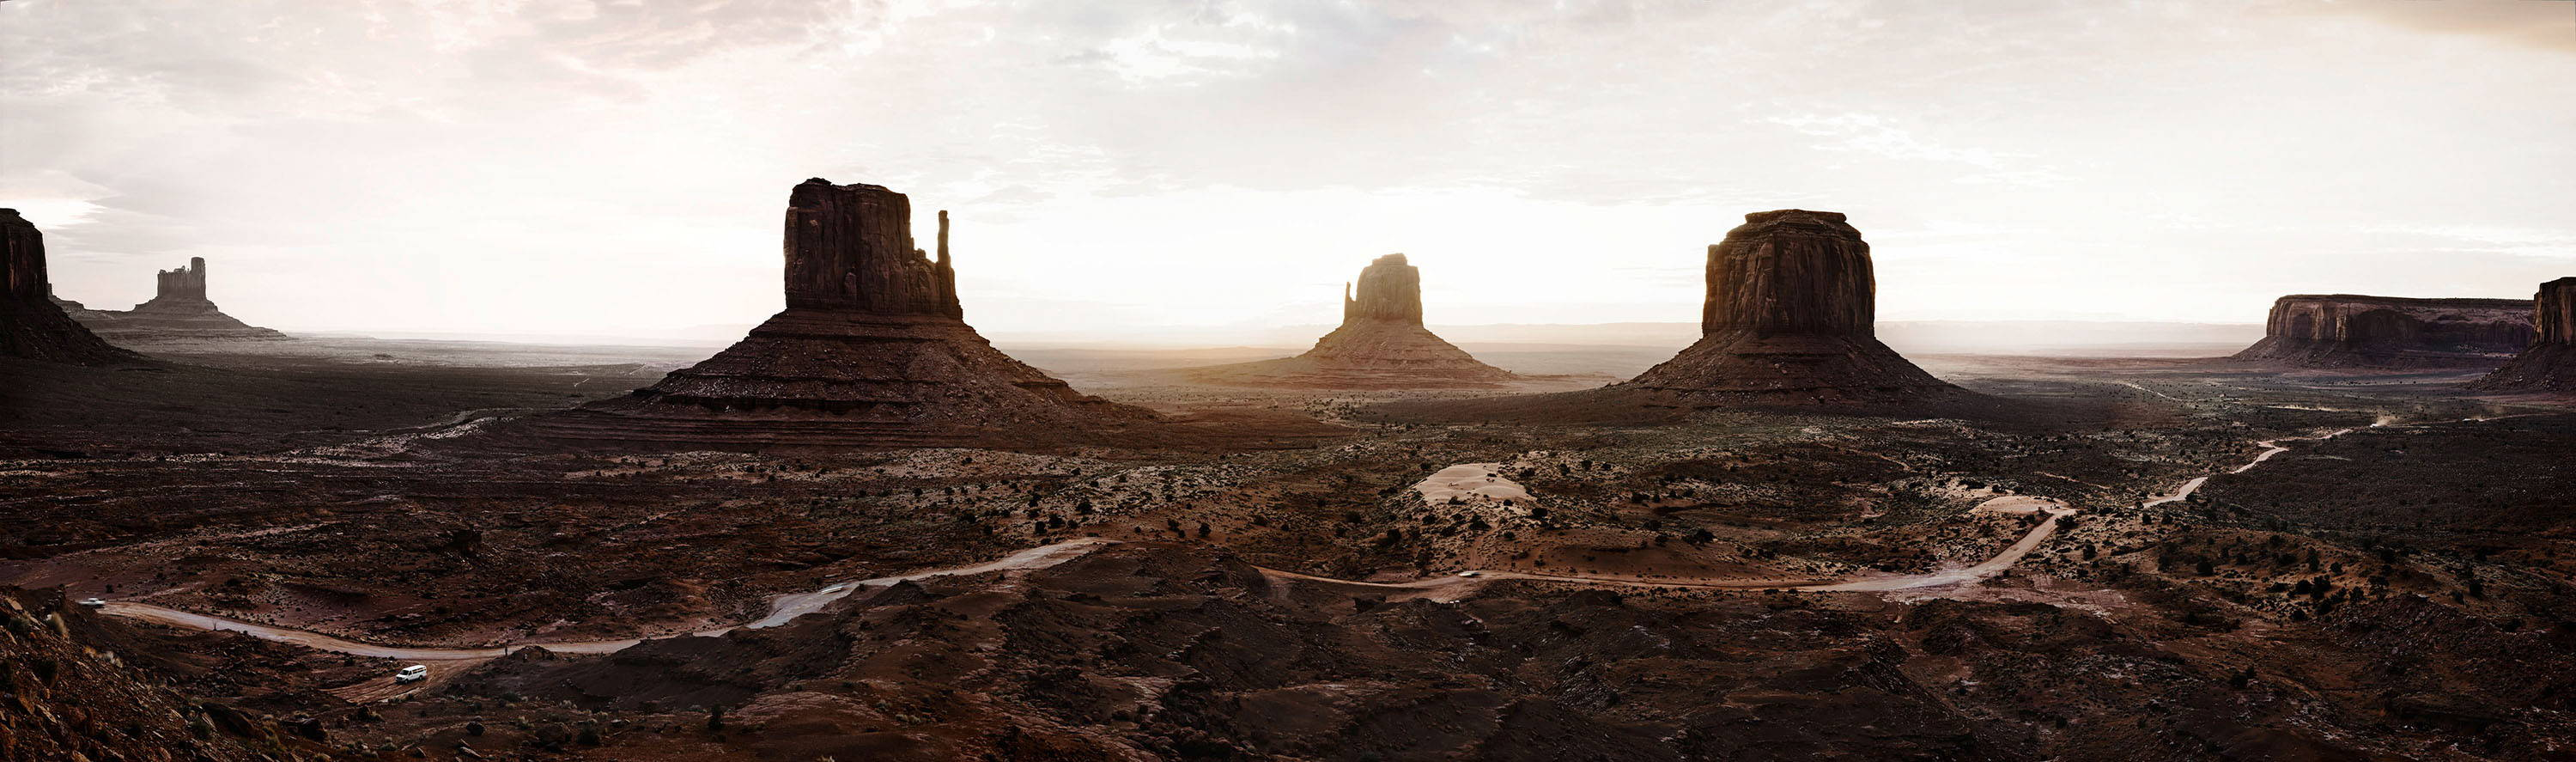 landscape image monument valley